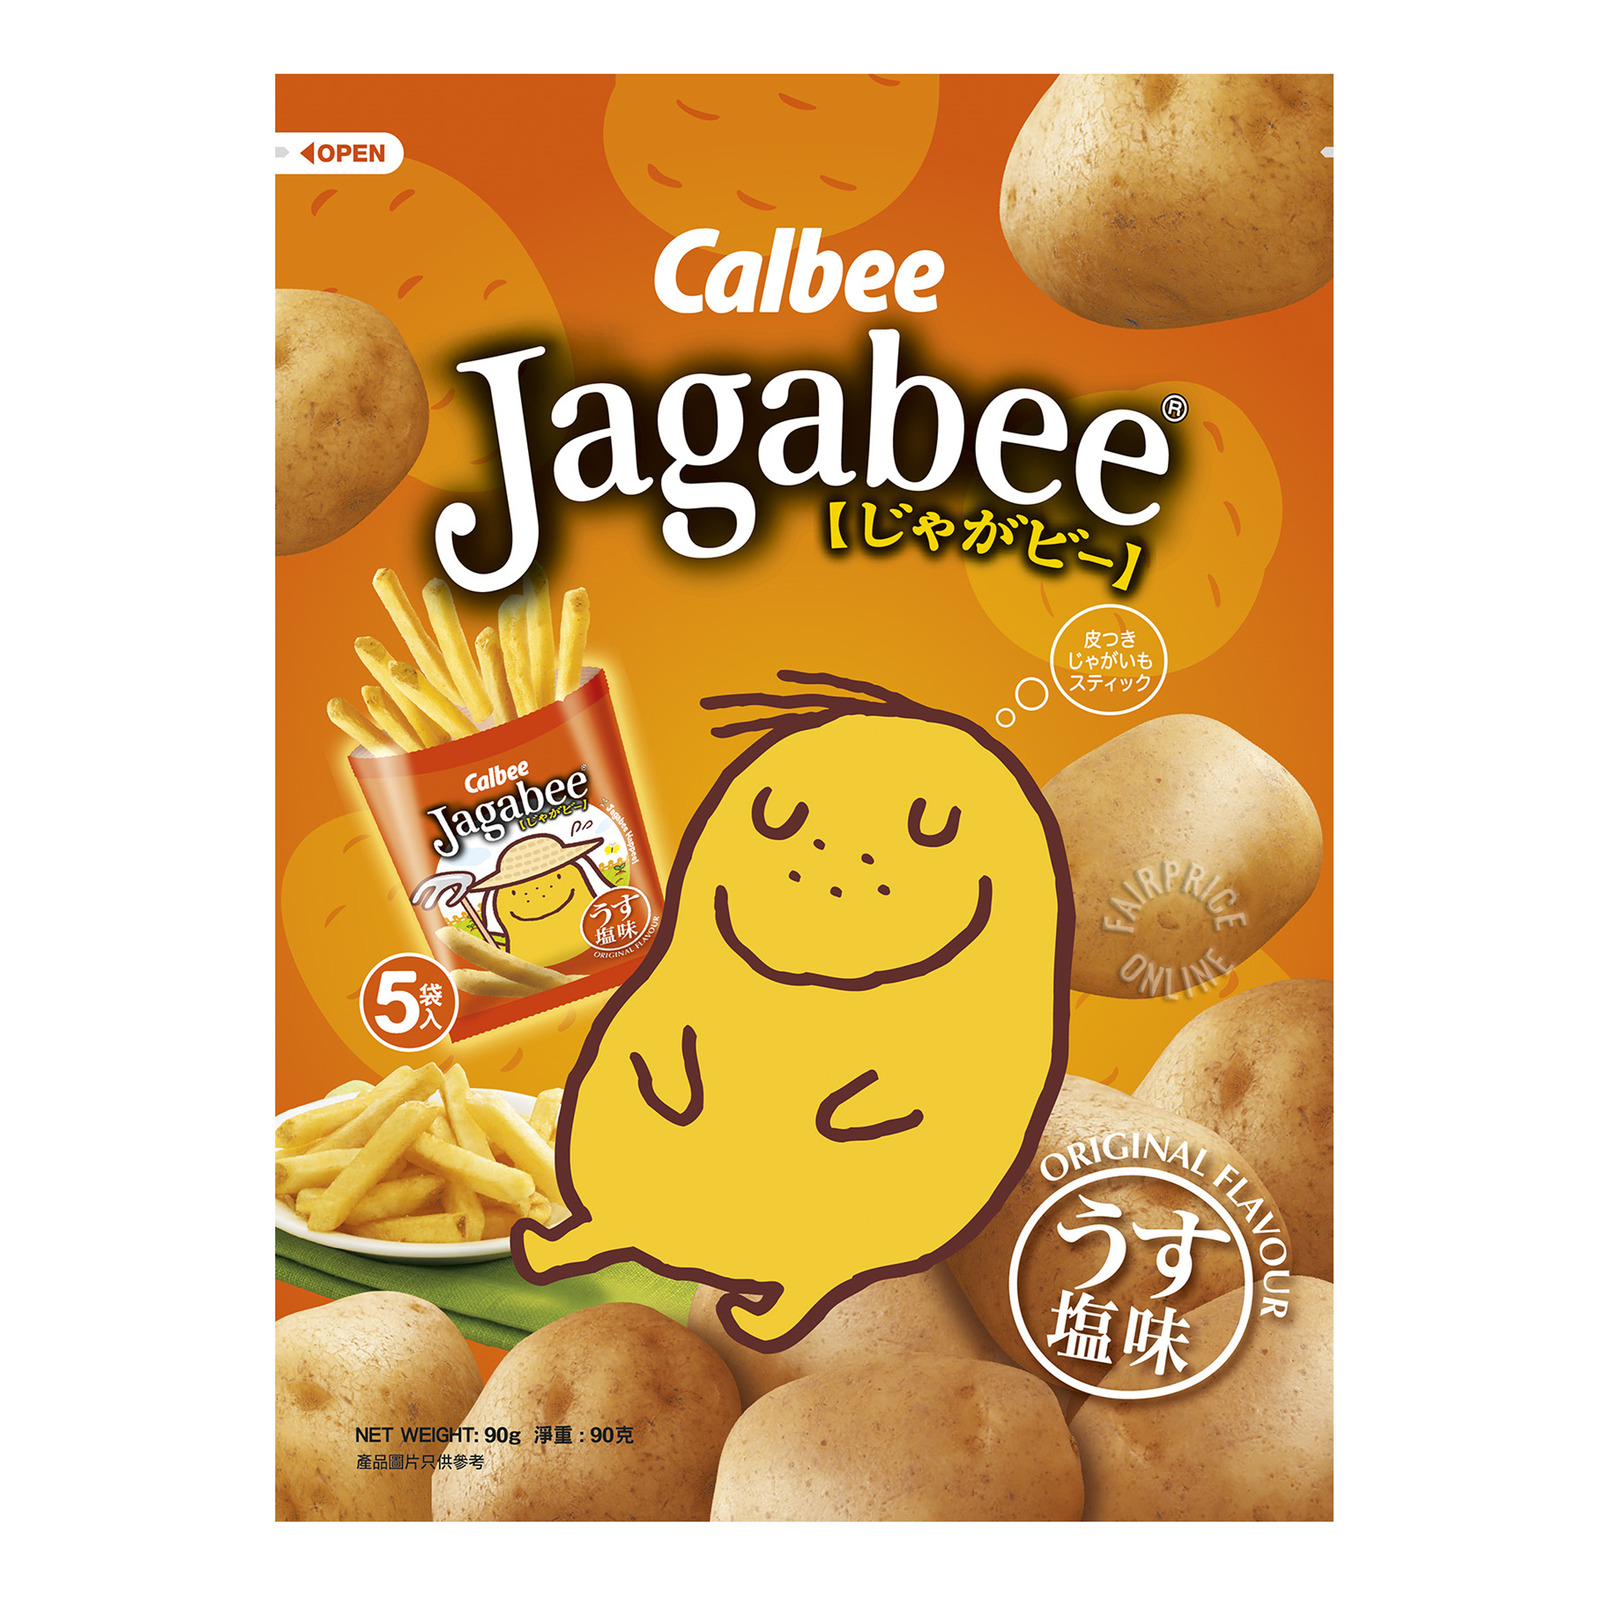 Calbee Jagabee Potato Sticks - Original